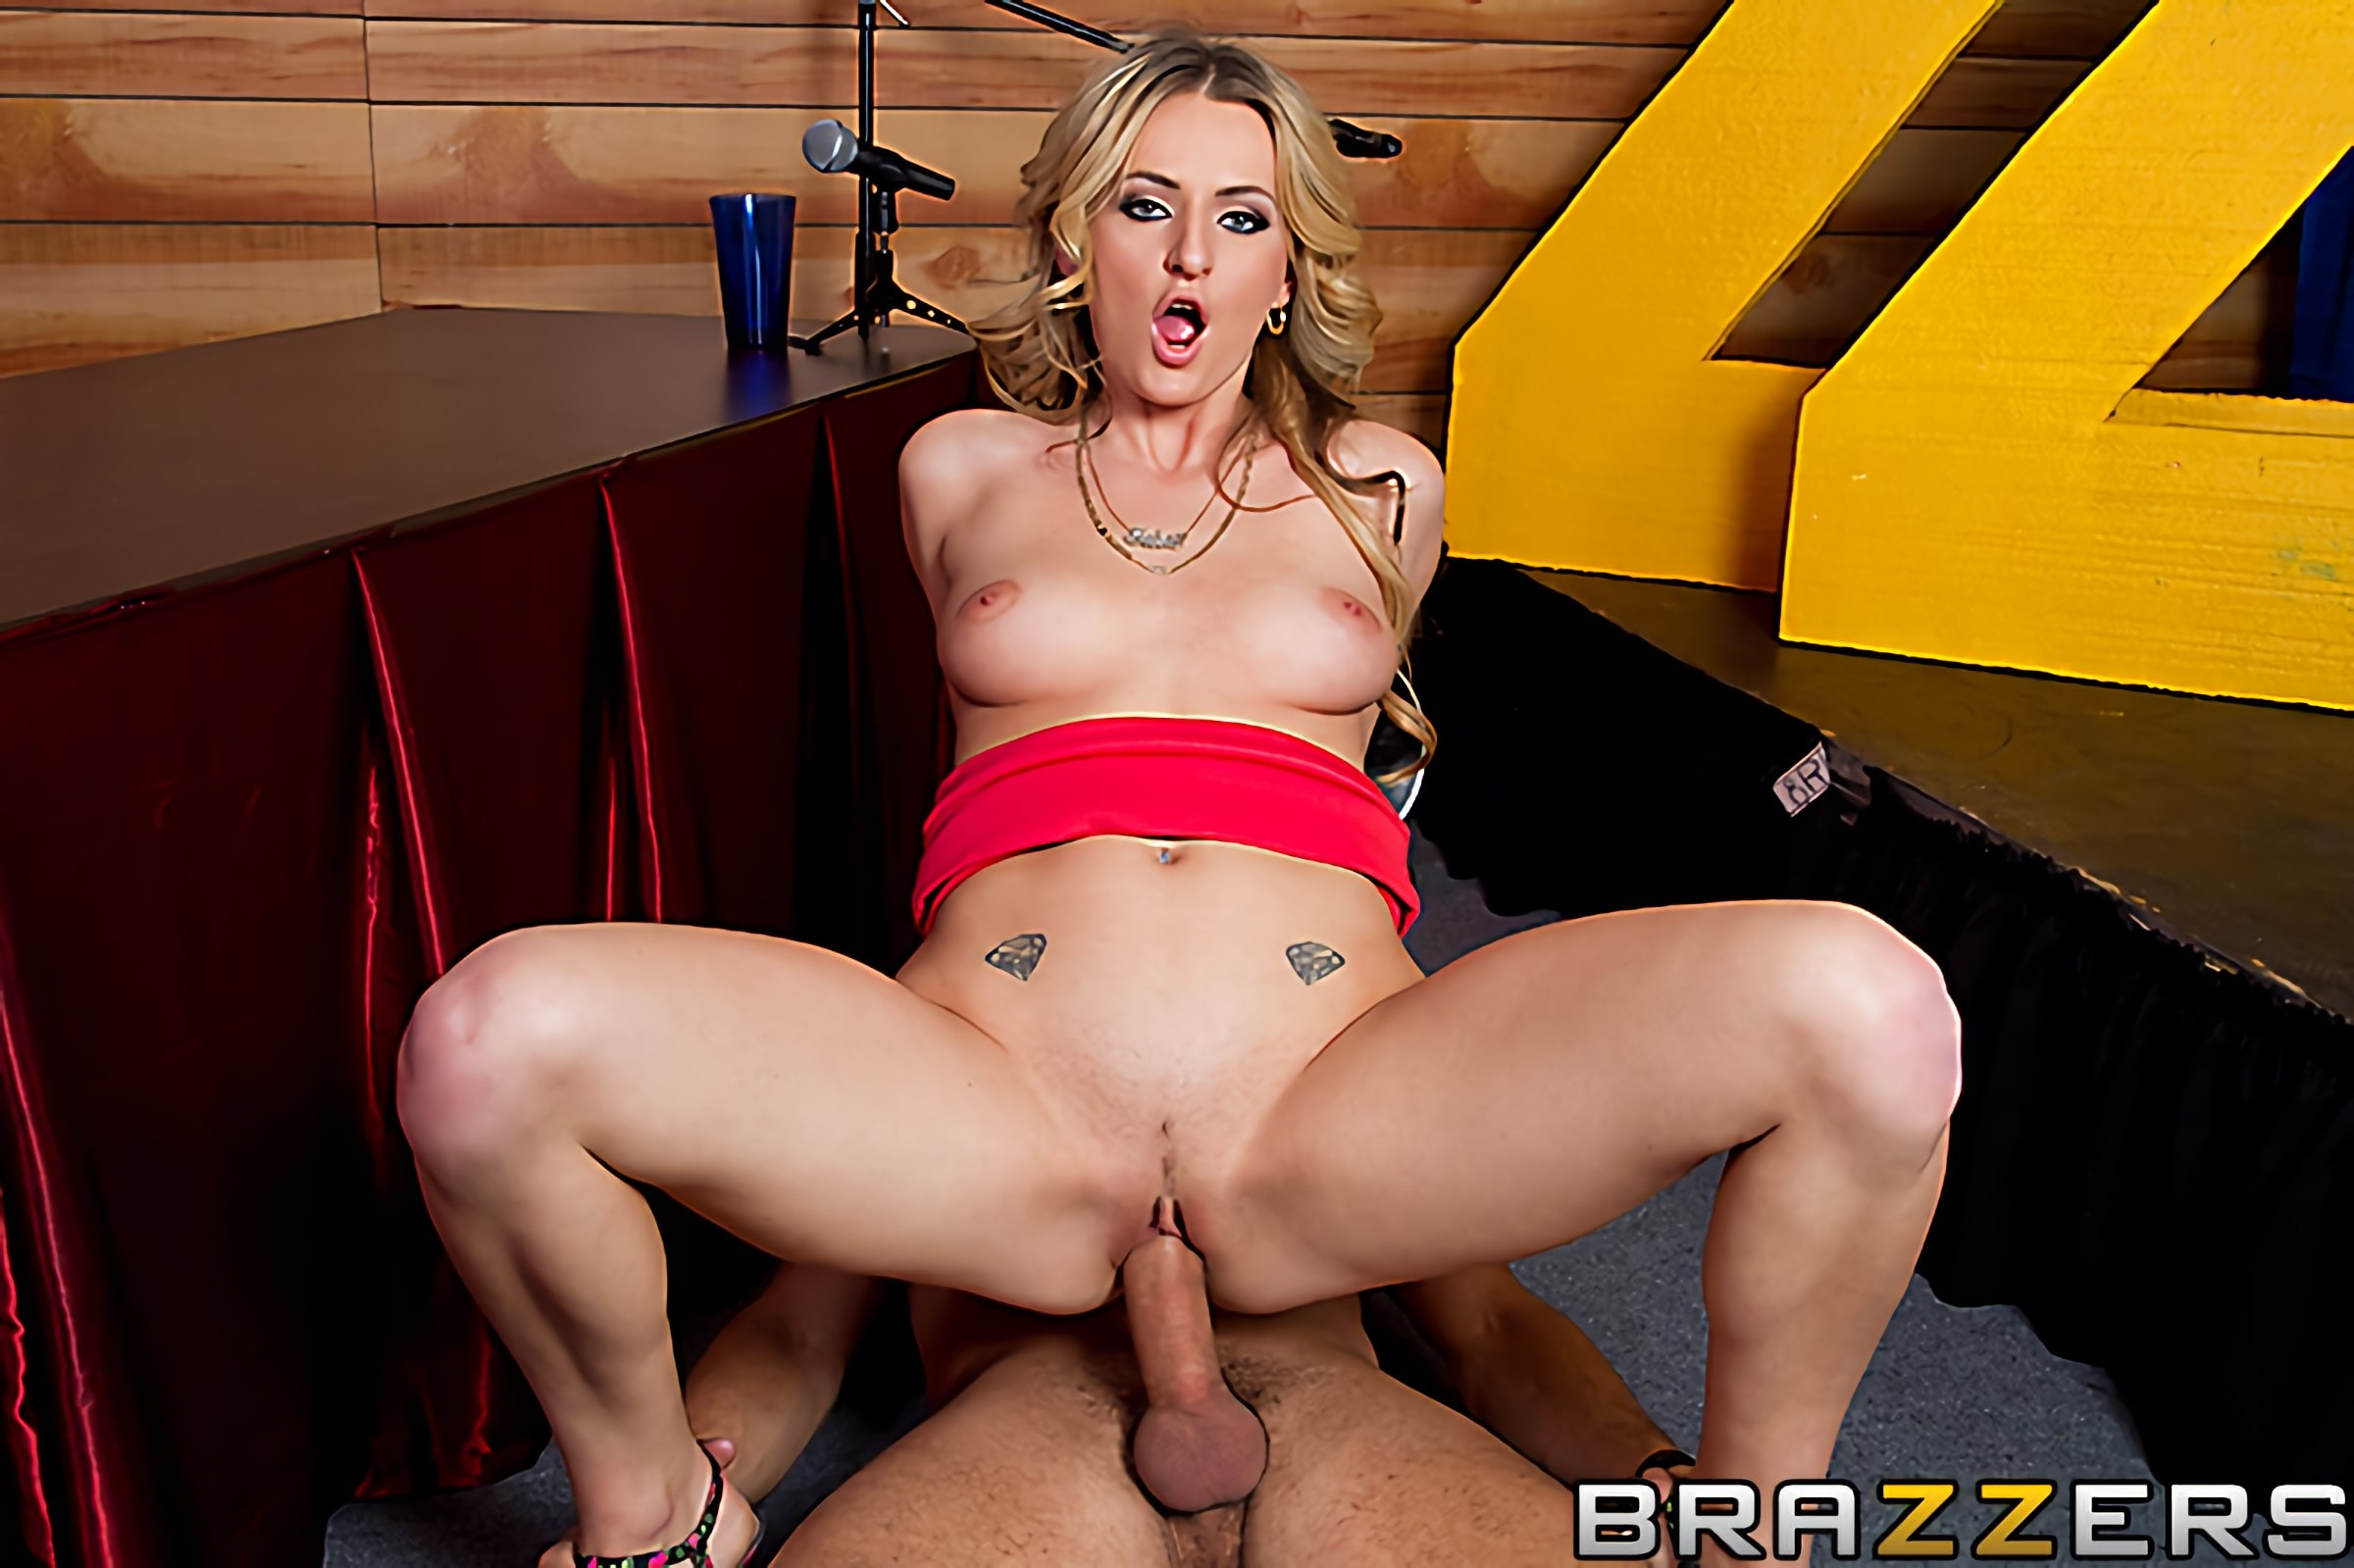 Brazzers 'ZZs Got Talent' starring Natasha Starr (Photo 7)